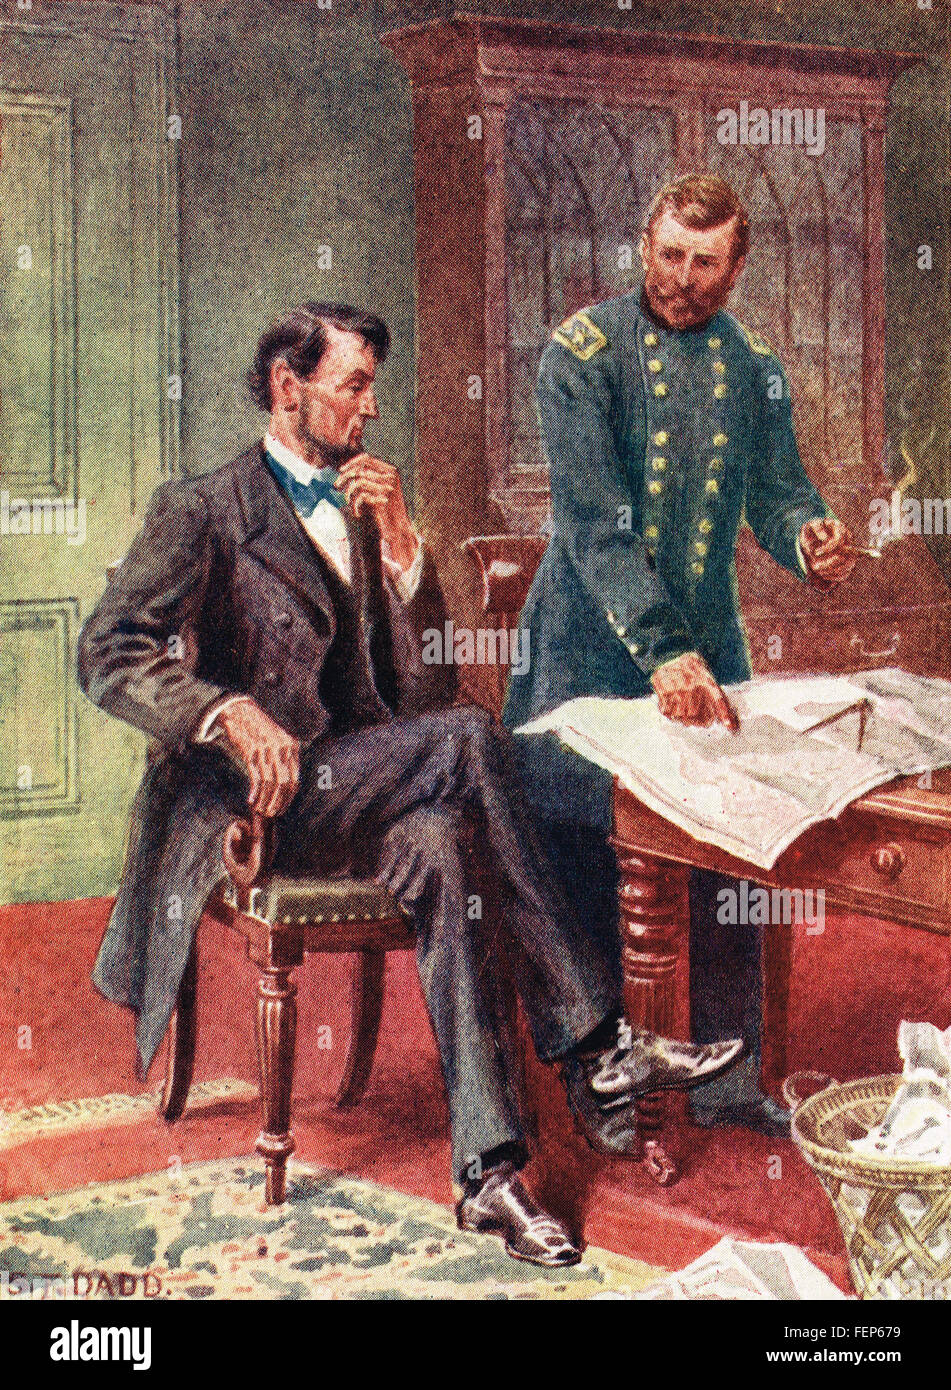 President Lincoln & General Grant discuss civil war plans - Stock Image